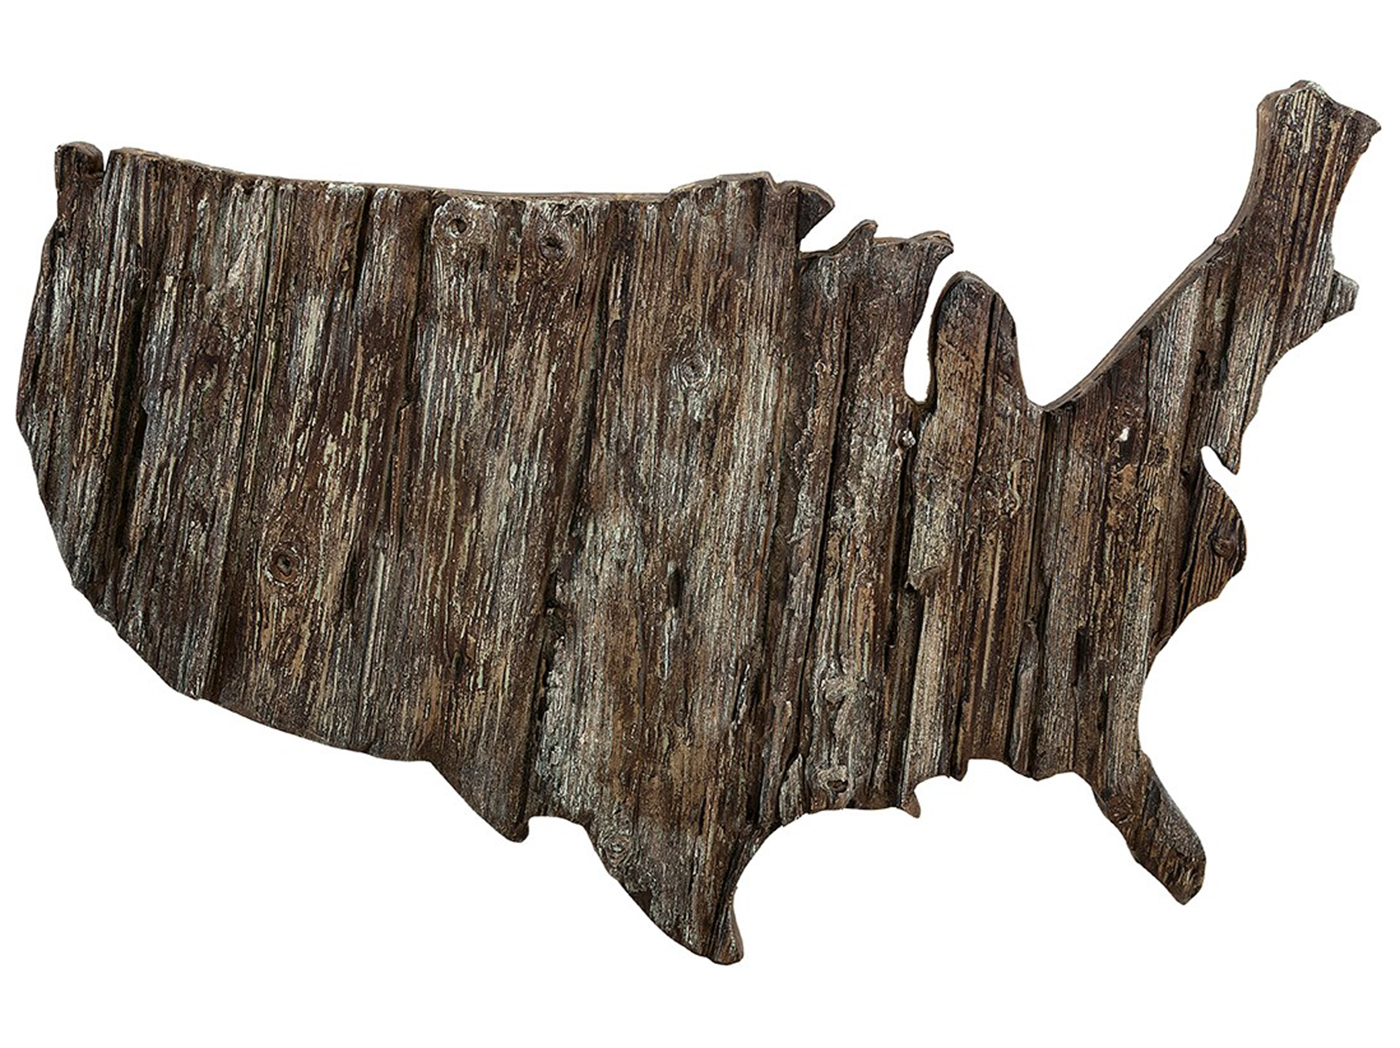 "Wood Look United States Wall Decor 46""W x 35.5""H"